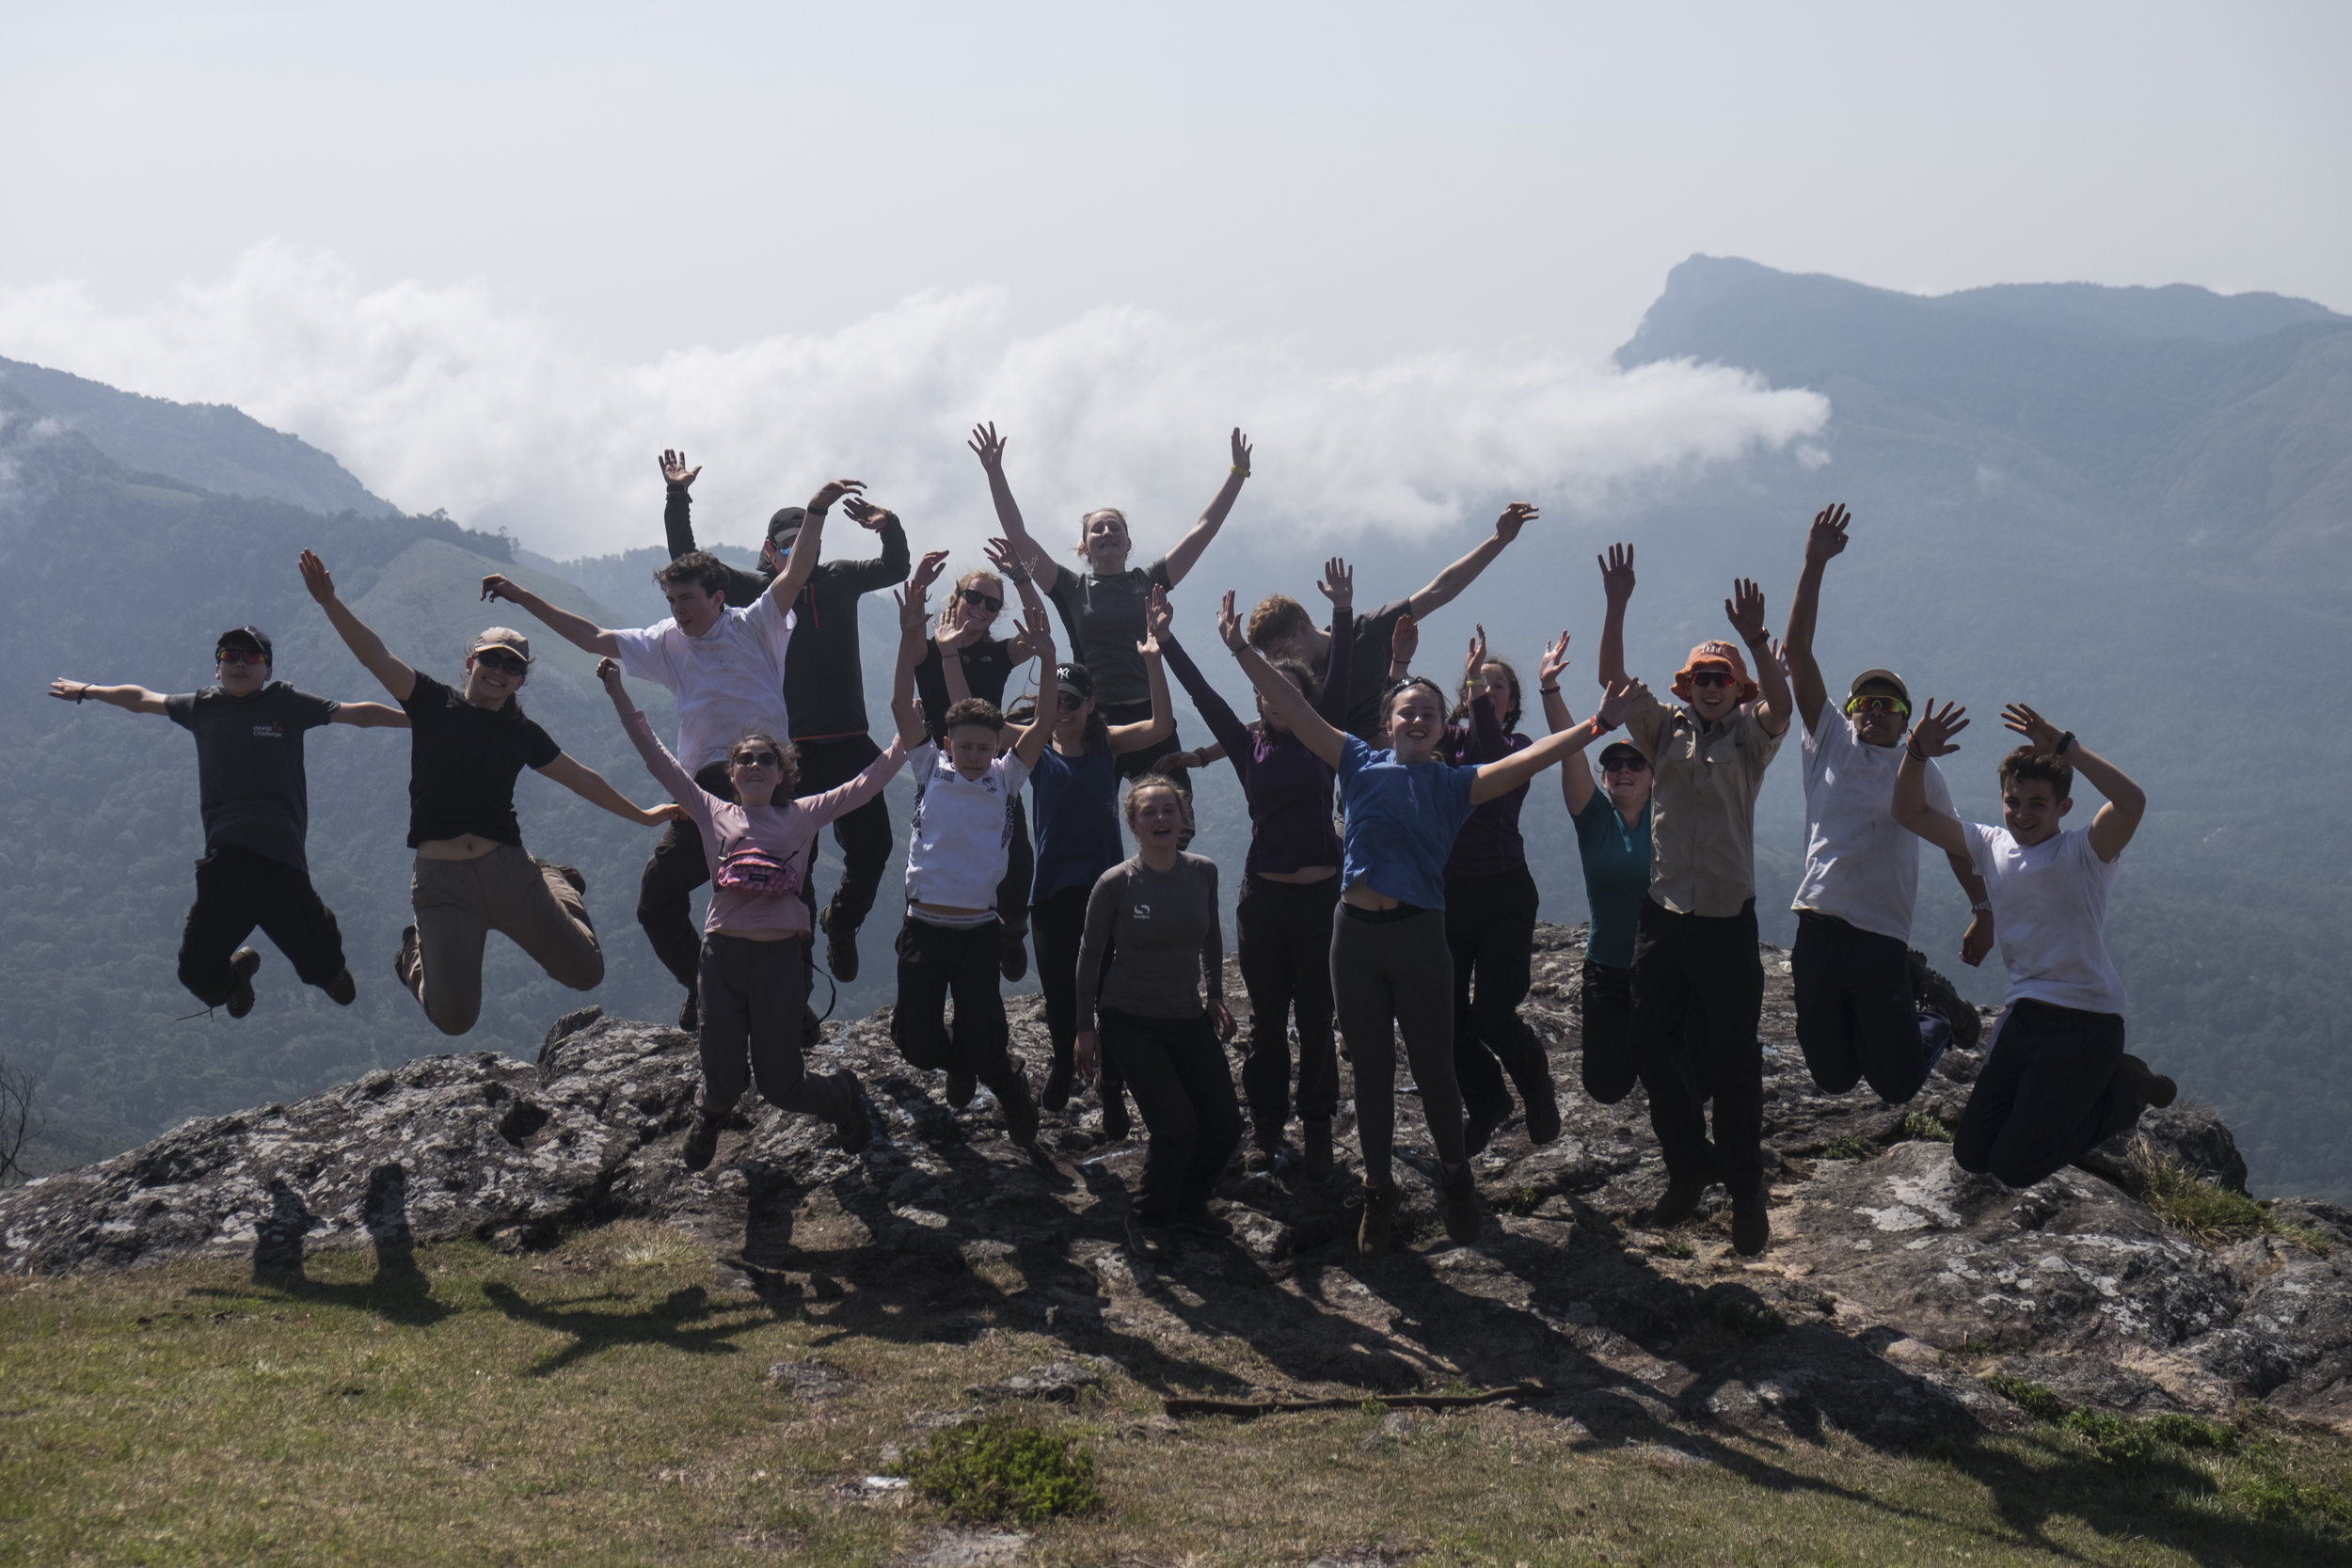 Classic jump shot with one of my expedition teams.